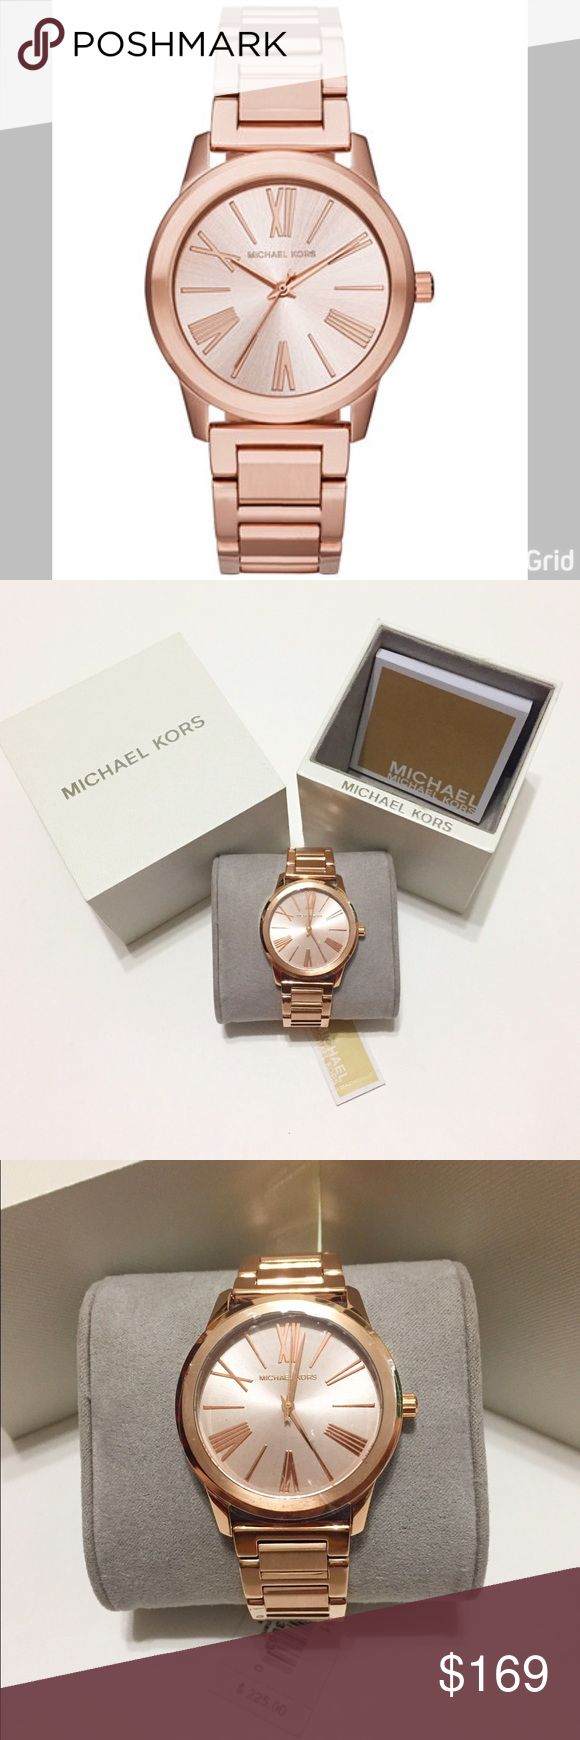 🆕 MK Hartman Rose Gold-tone Stainless Steel Watch Brand new and 100% authentic Michael Kors Women's Watch. Rose Gold-tone stainless steel 38mm bracelet watch. Round case, rose gold tone dial with Roman numerals, stick indices, three hands and Michael Kors logo. Water resistant to 50 meters. A very light weight timepiece from the Hartman collection. Wonderful gift or just simply to add to your collection.... brand new with film sticker still attached on front and back of round case and band…